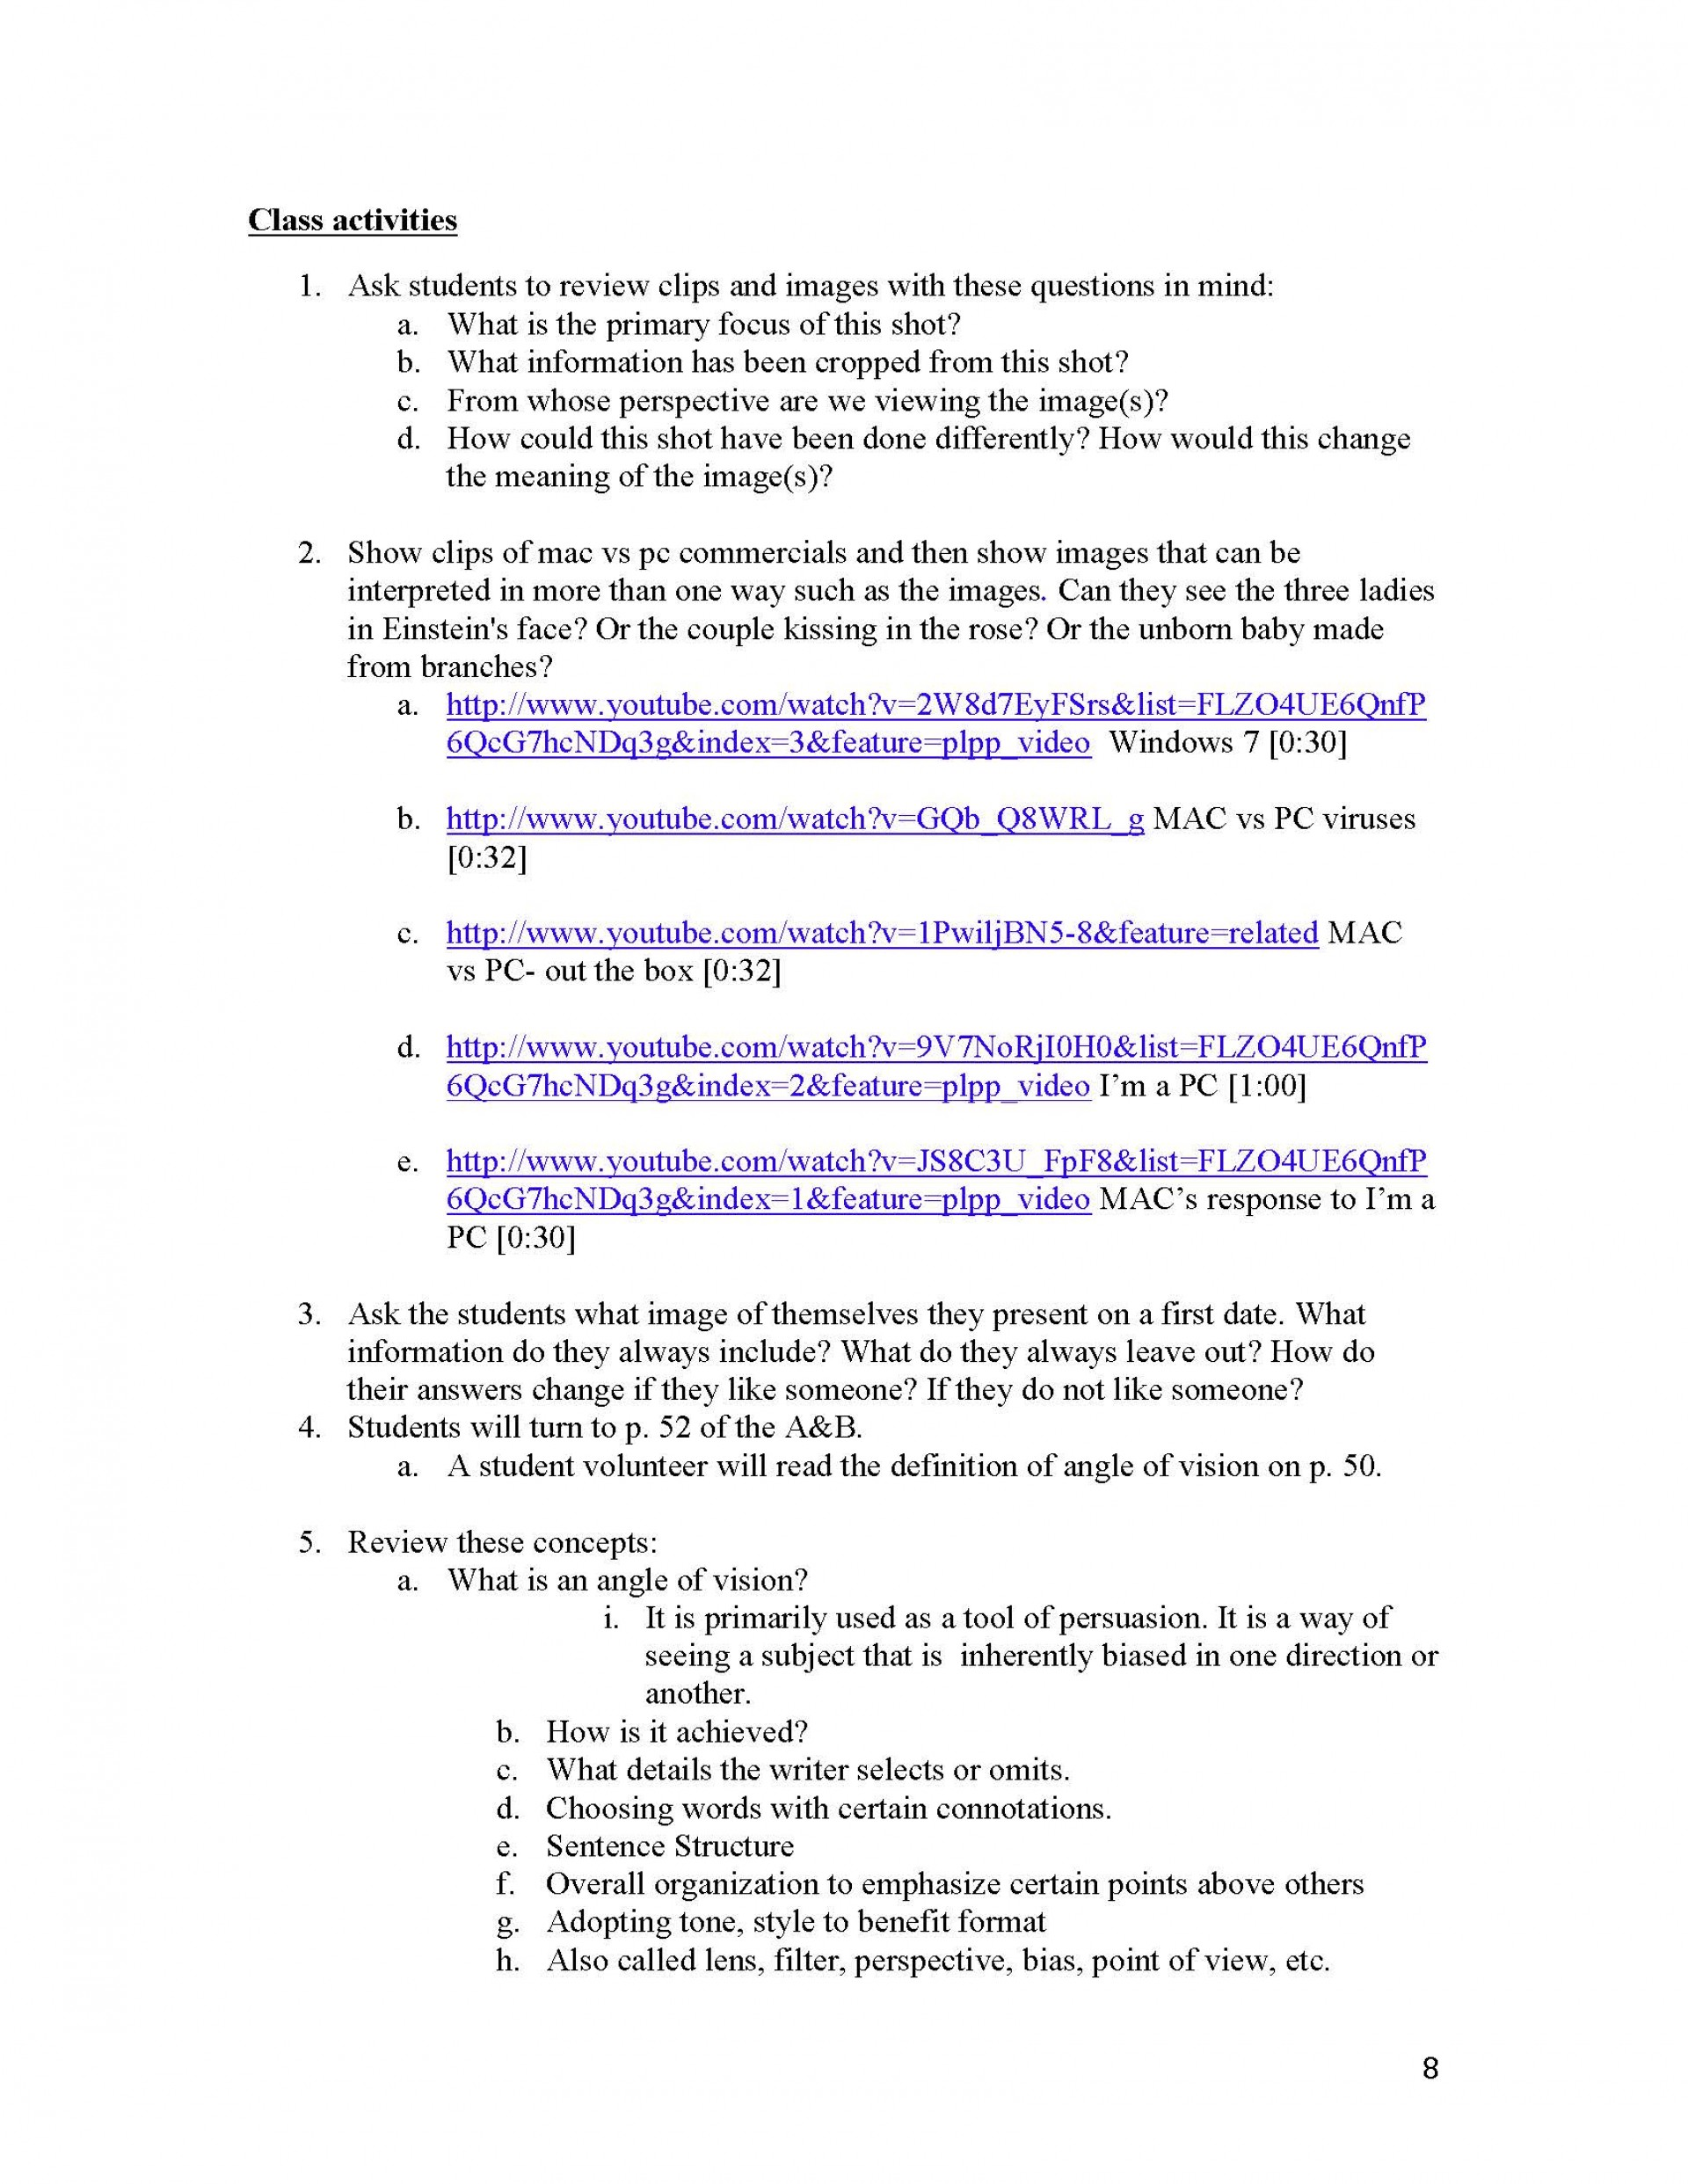 006 Essay Example Define Narrative Unit 1 Literacy Instructor Copy Page 08 Fascinating Narrative/descriptive Definition Of Writing The Term 1920